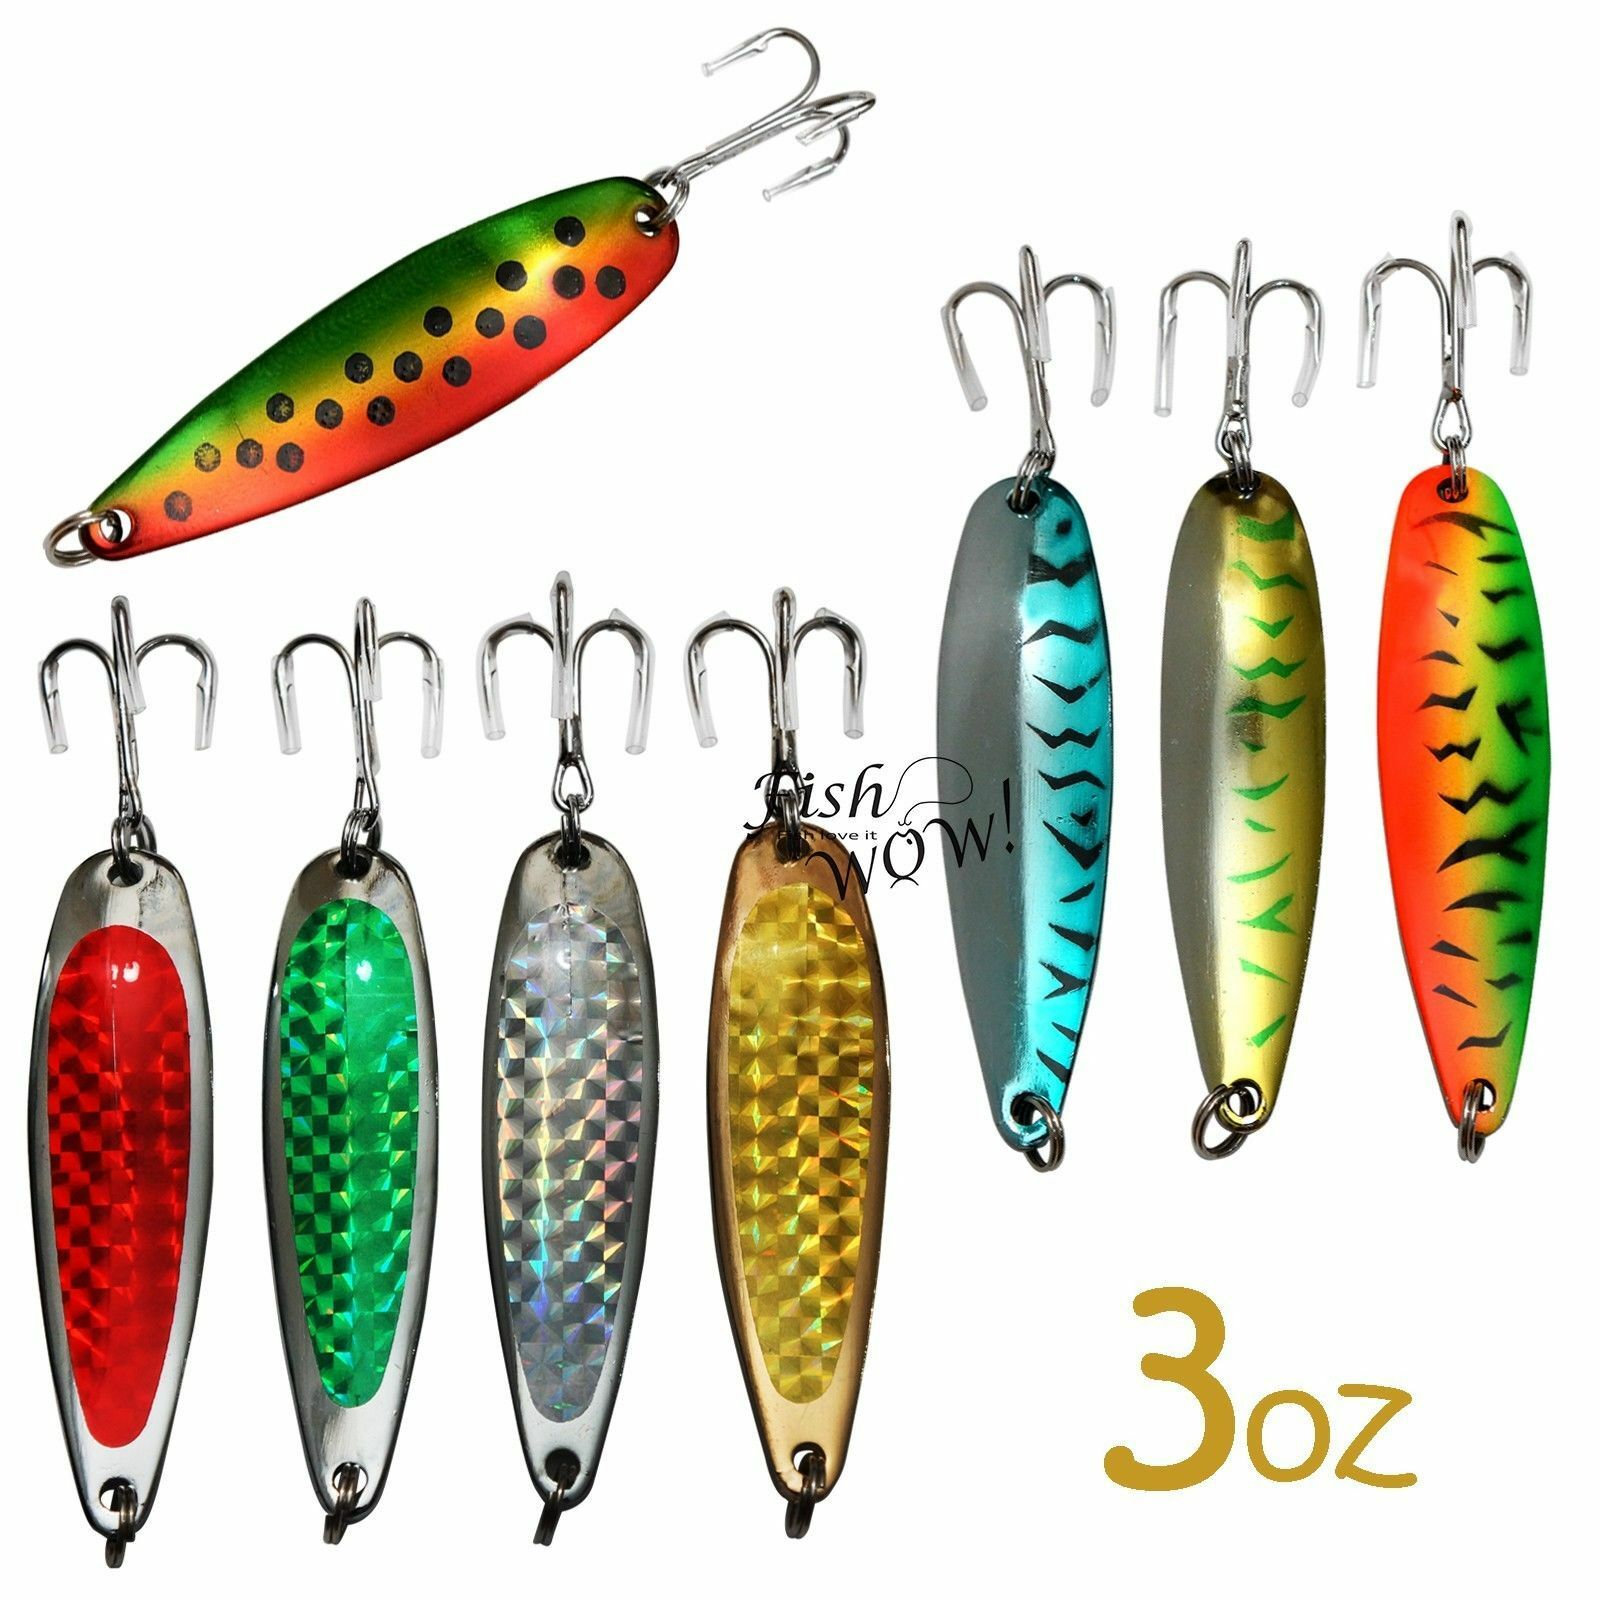 10pcs 3oz Random colors Fishing Spoons Treble Hook Casting Metal Fish Jigs New